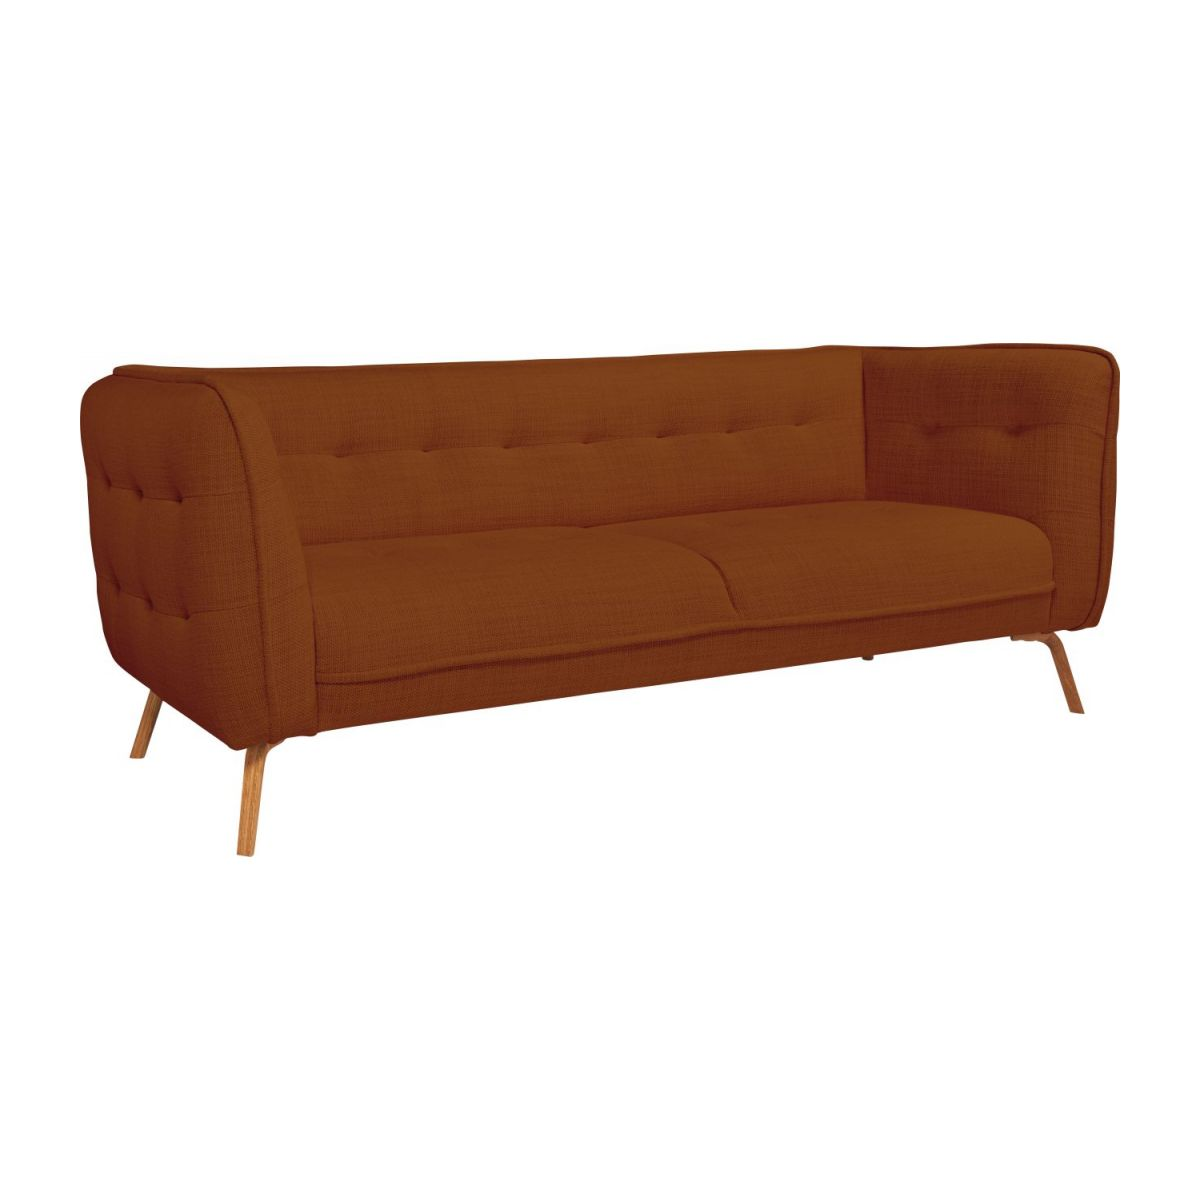 3 seater sofa in Fasoli fabric, warm red rock and oak legs n°1